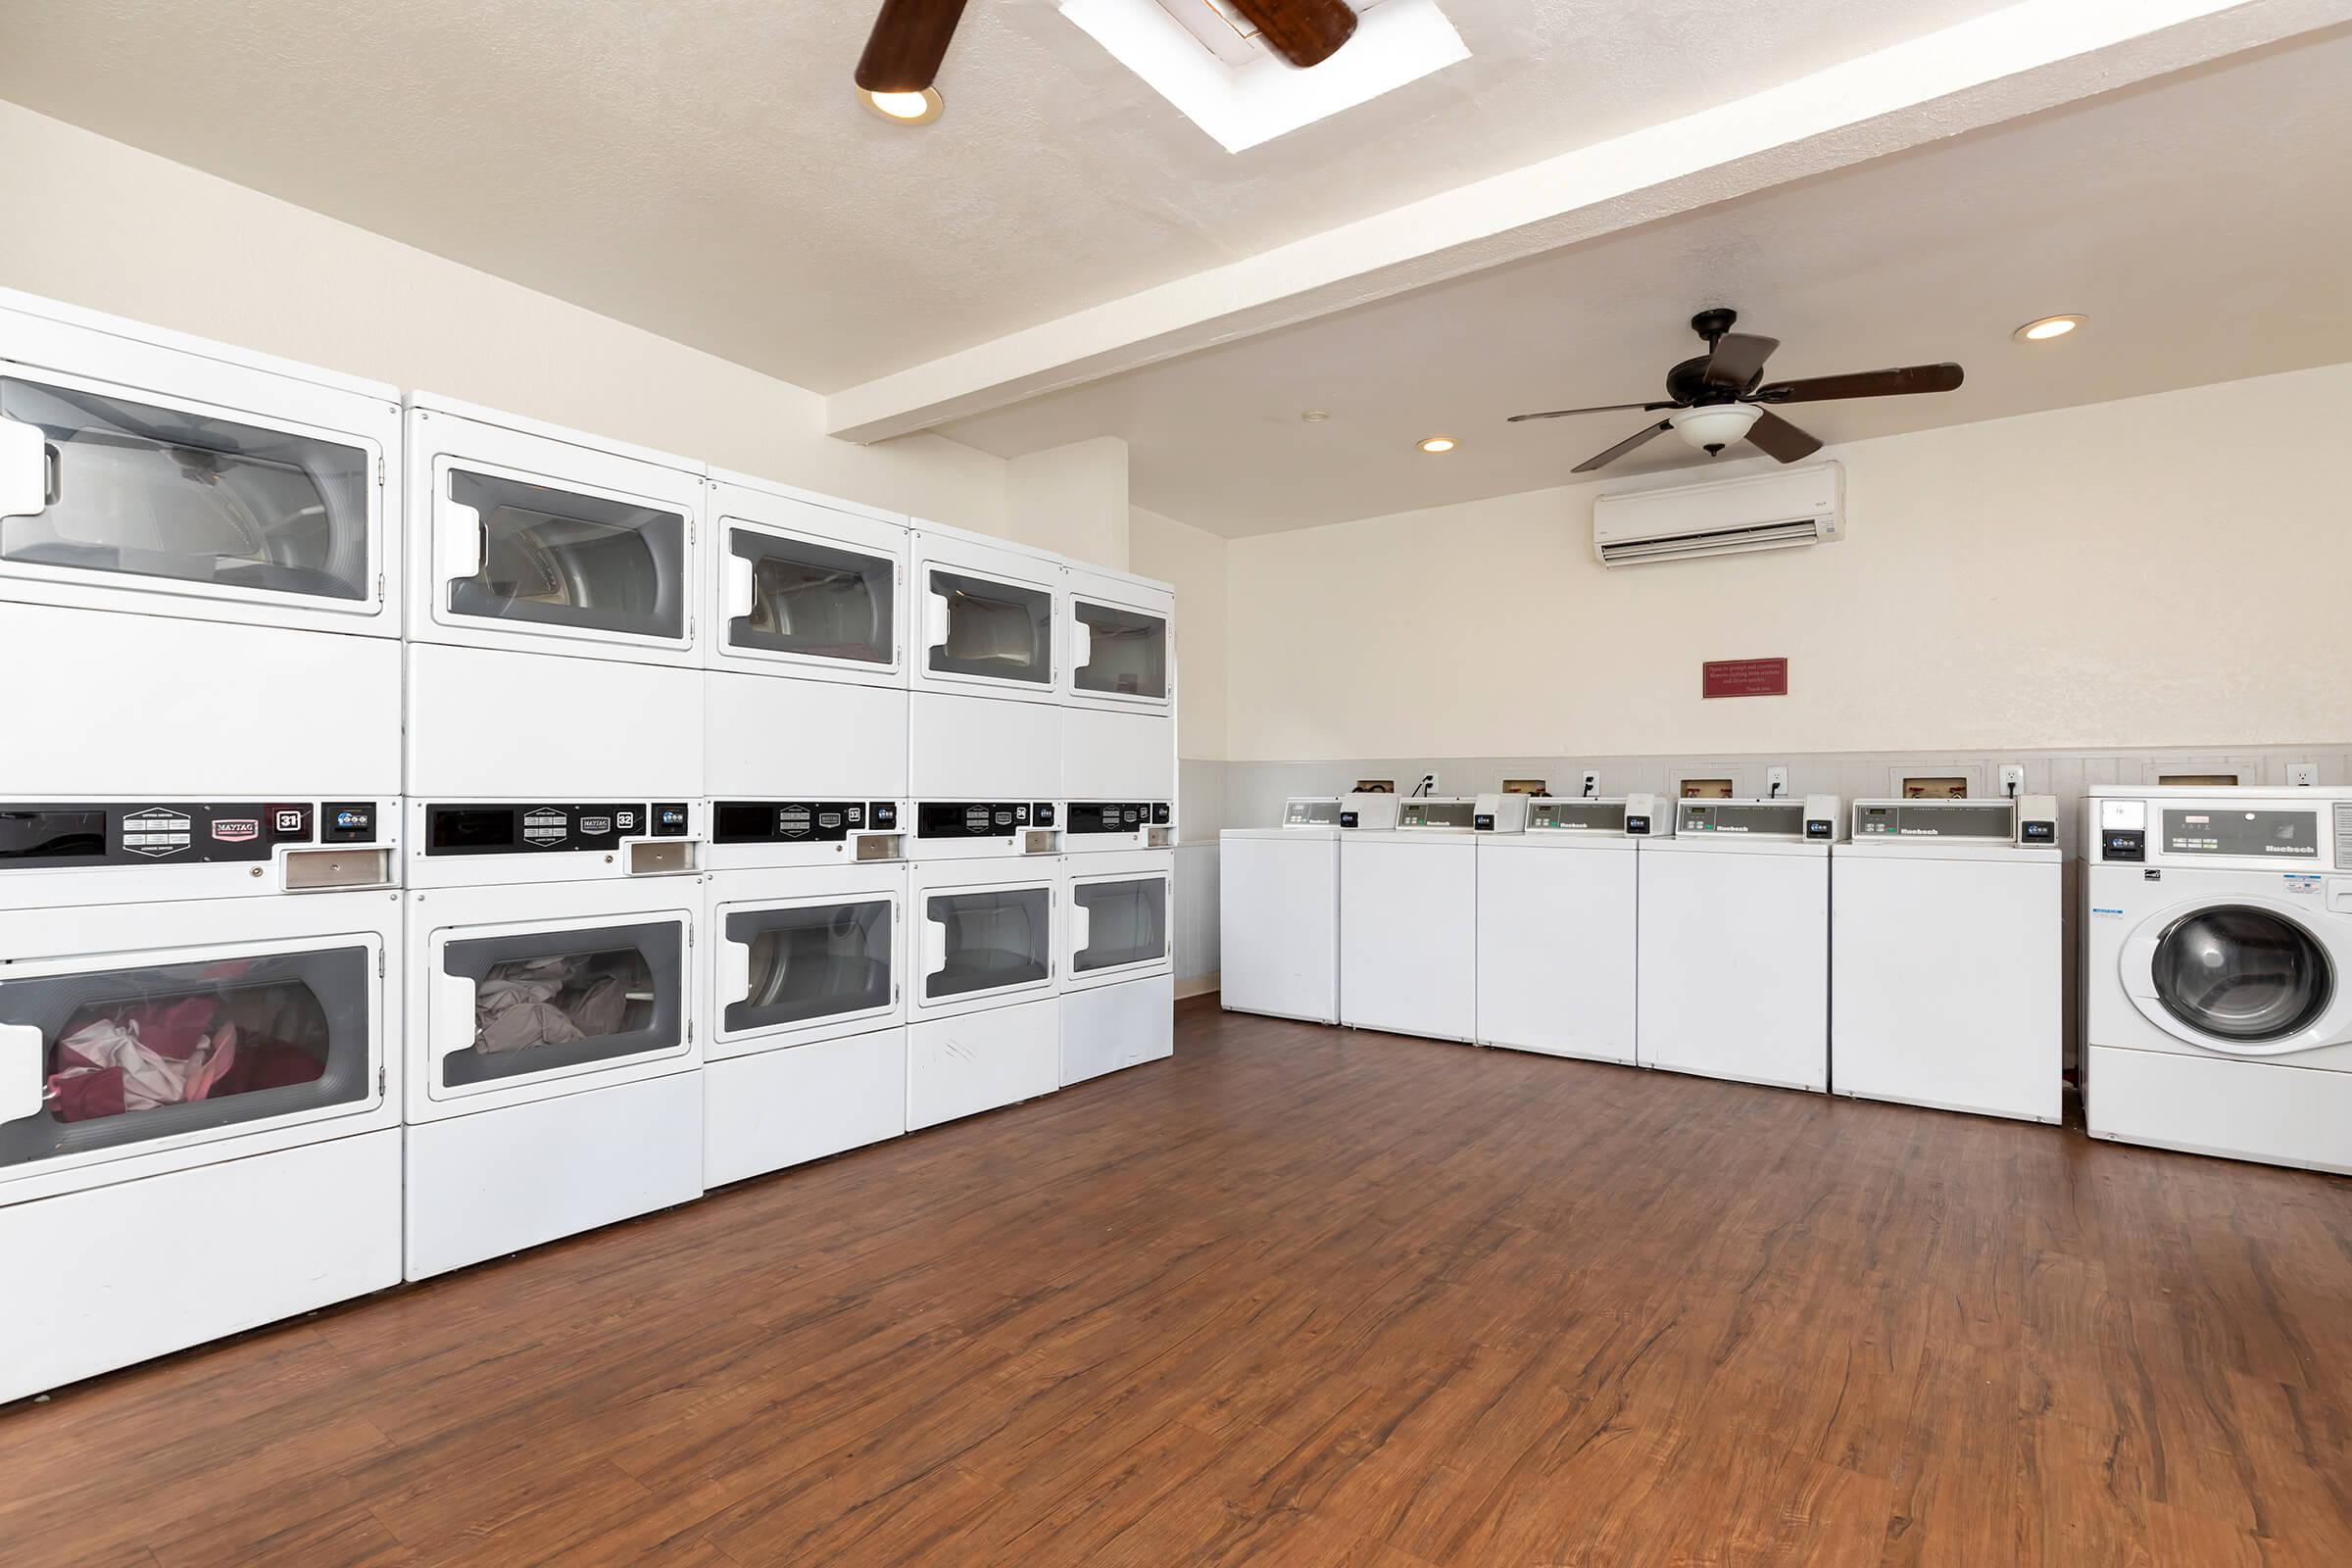 a large kitchen with white cabinets